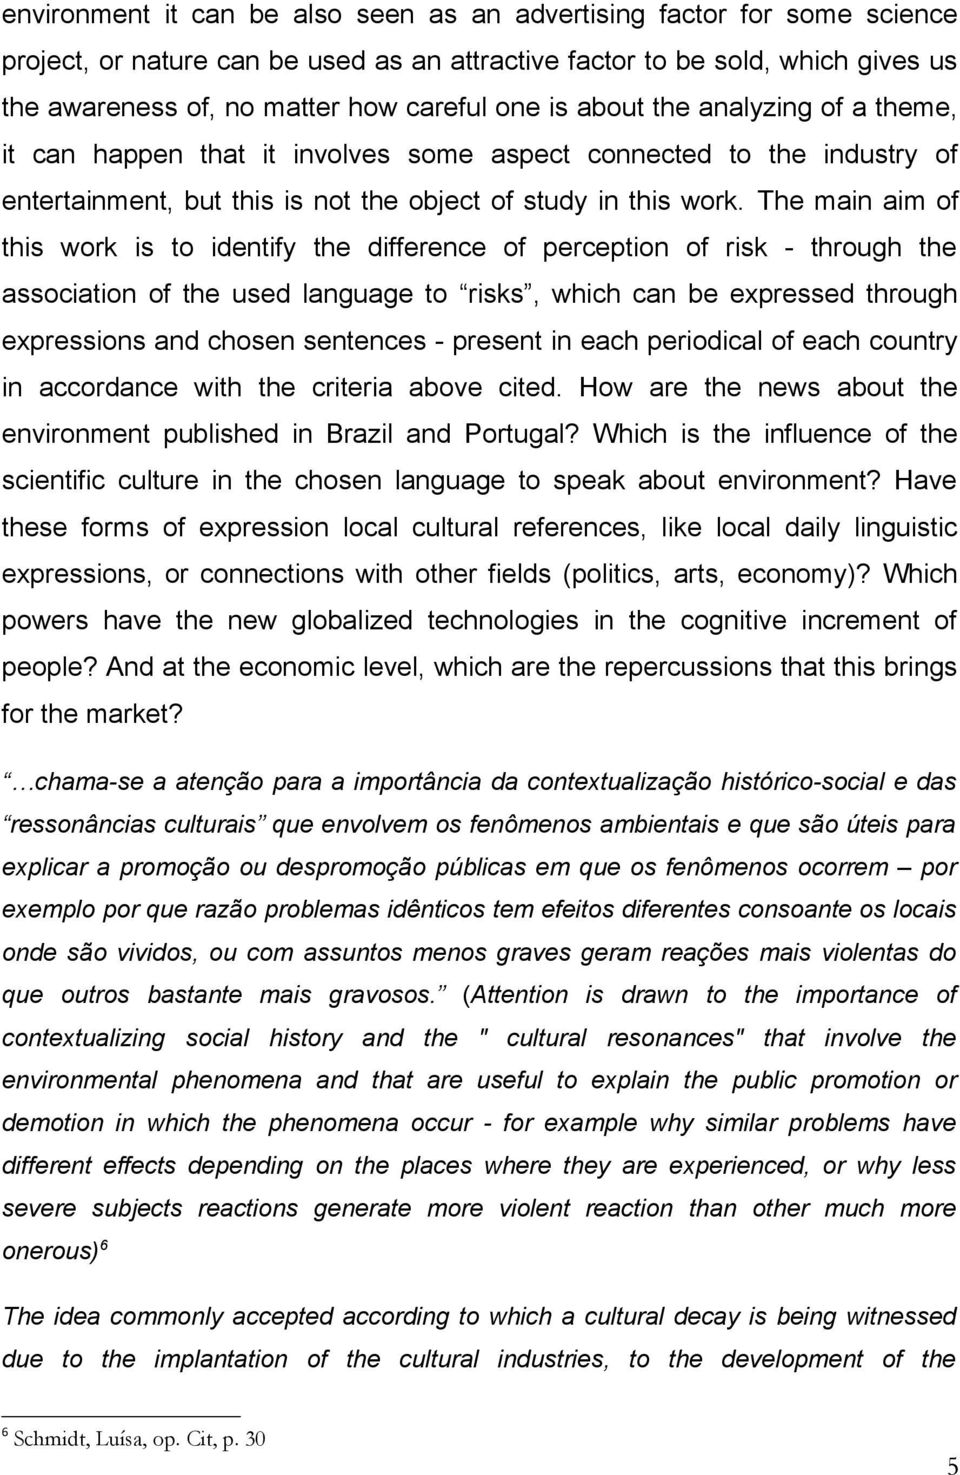 The main aim of this work is to identify the difference of perception of risk - through the association of the used language to risks, which can be expressed through expressions and chosen sentences